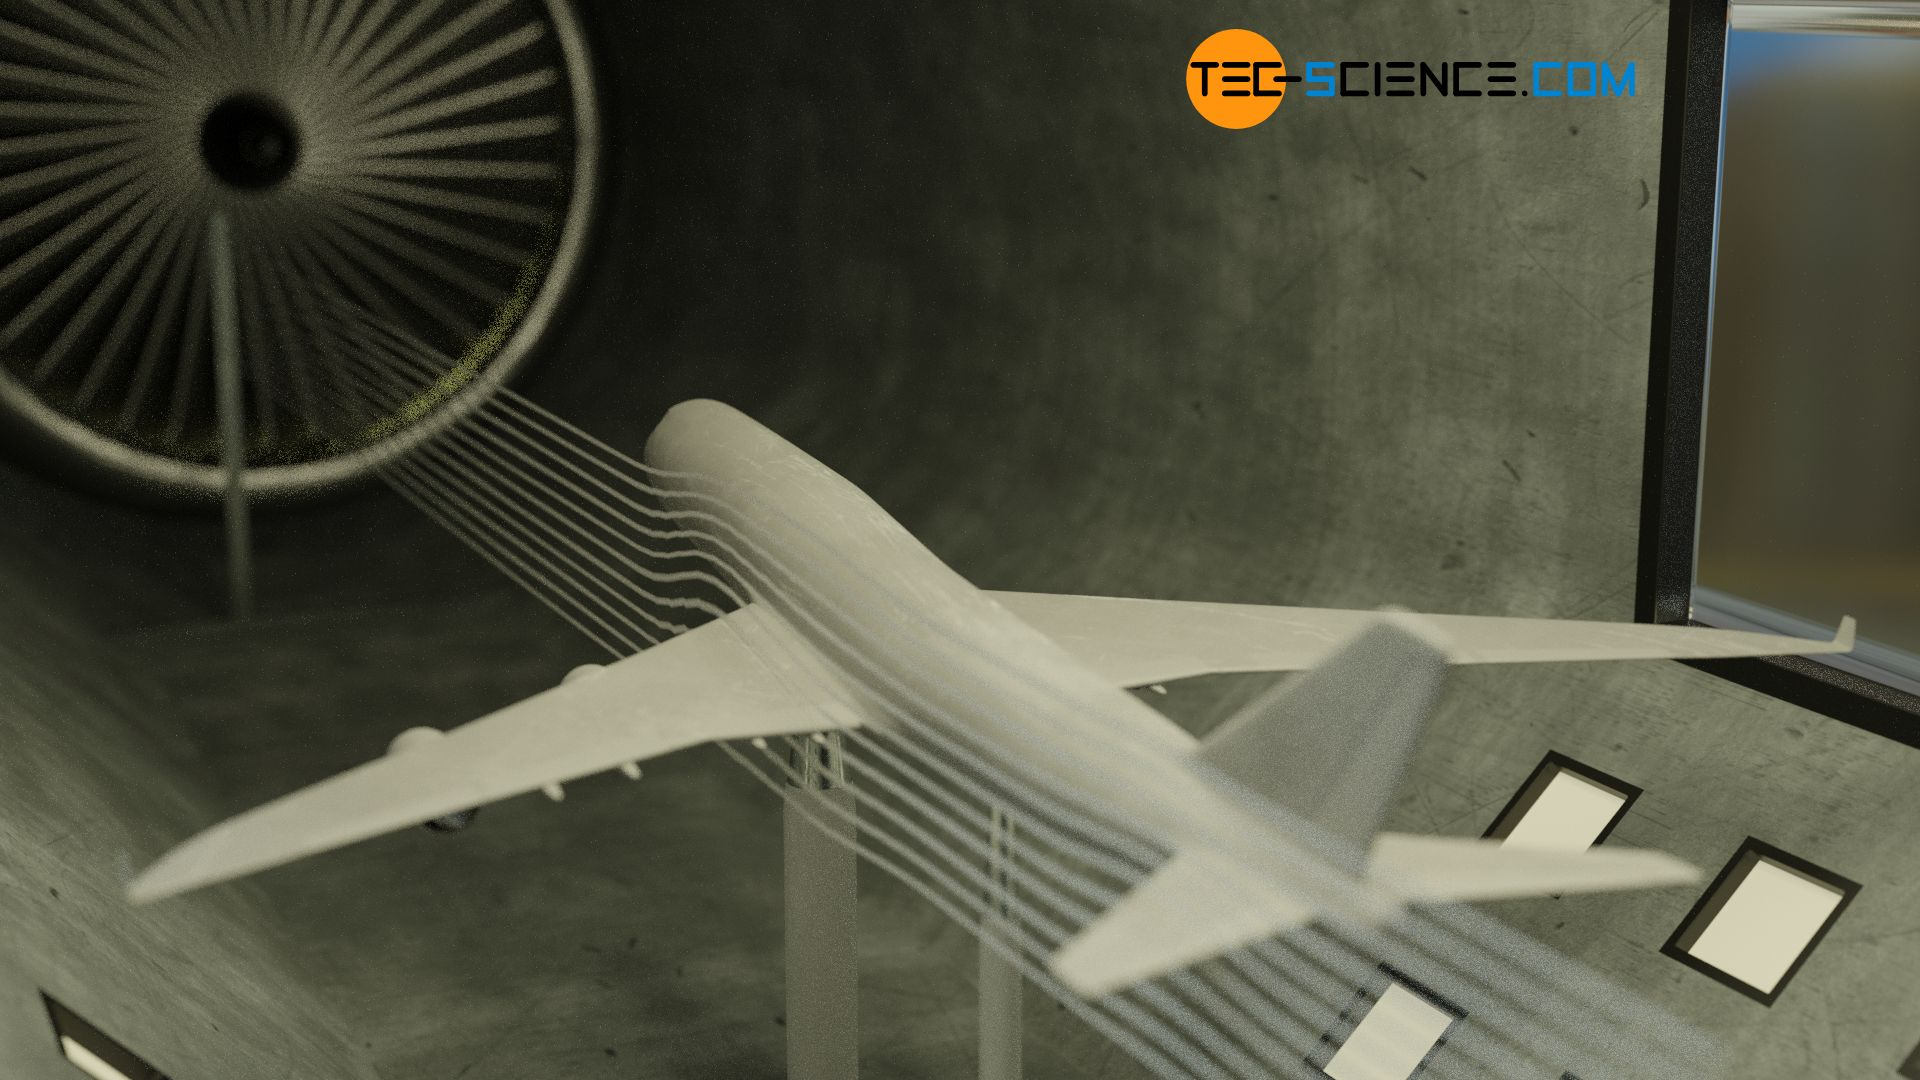 Aircraft model in a wind tunnel to study the flow around the aircraft